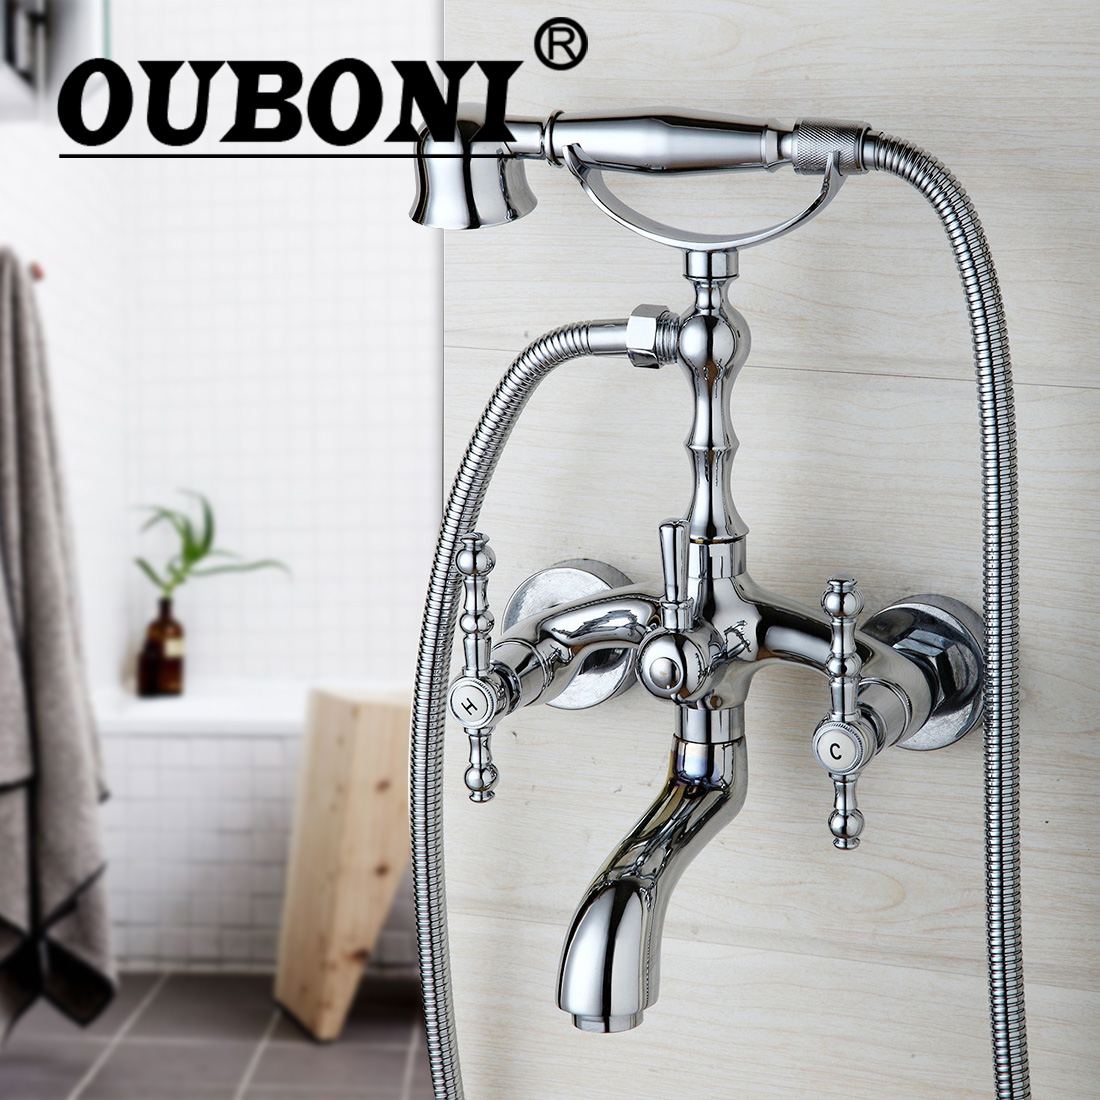 OUBONI Shower Set Chrome Telephone Install Bathroom Sink Faucet Bathtub Basin Mixer Tap With Shower Hand free shipping polished chrome finish new wall mounted waterfall bathroom bathtub handheld shower tap mixer faucet yt 5333